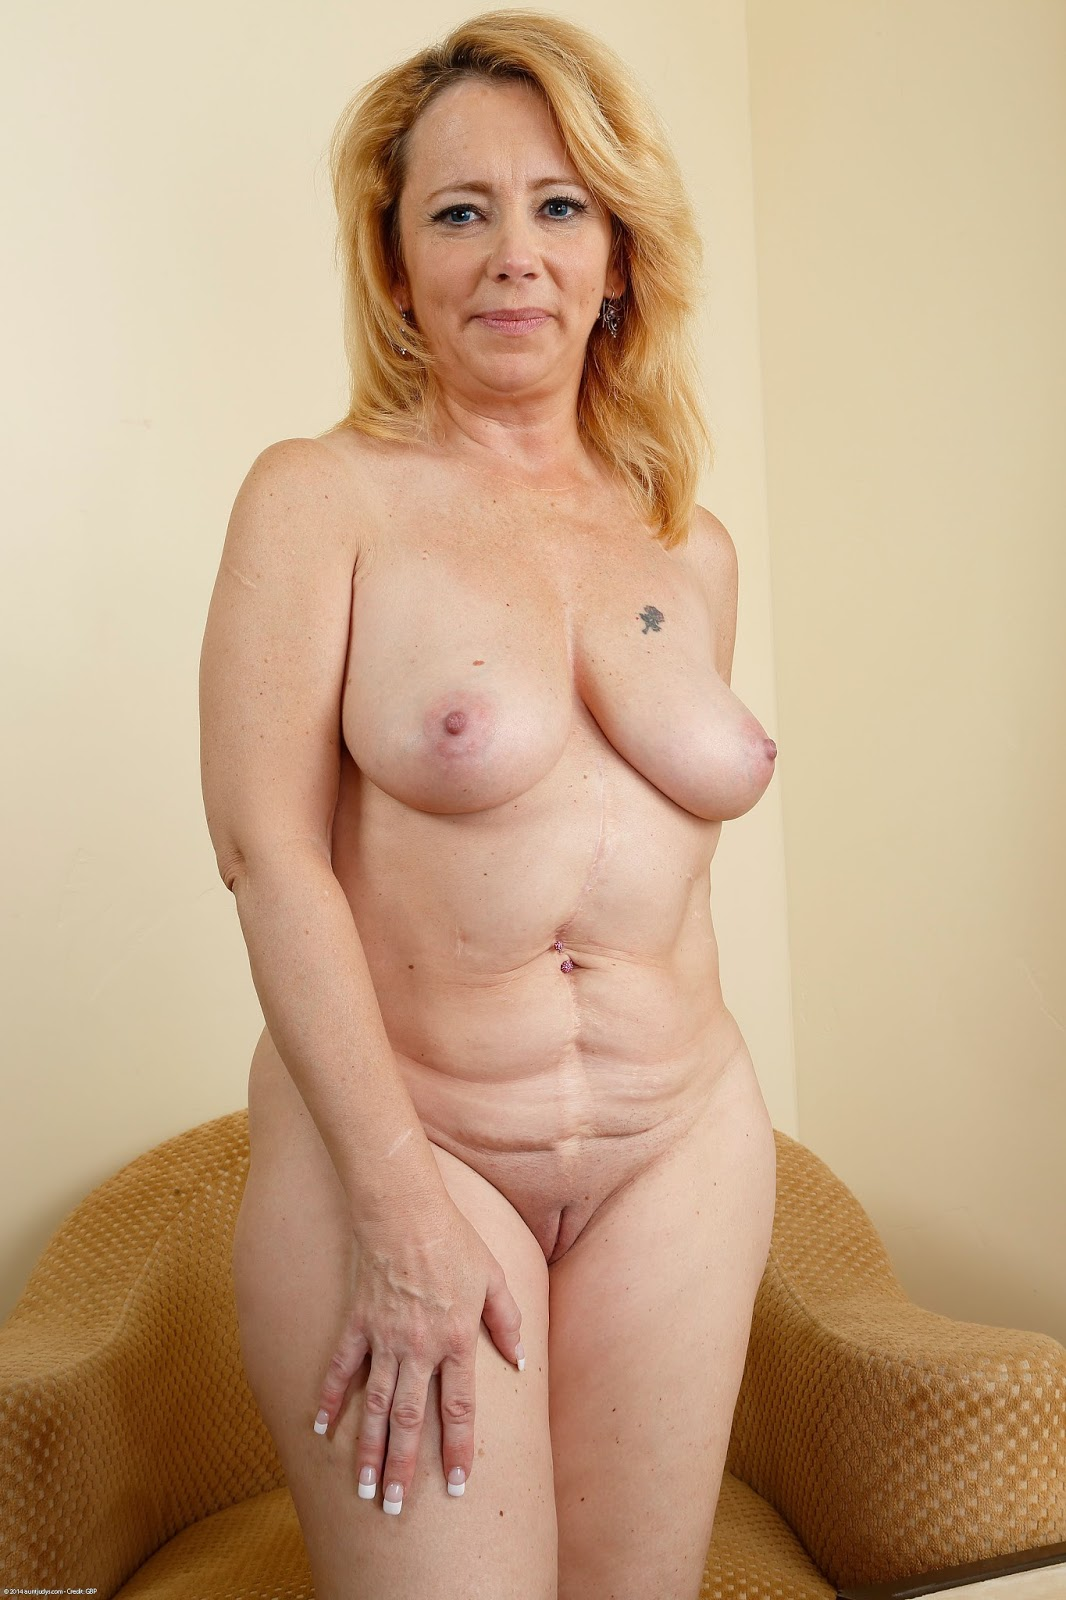 Nude sweet women